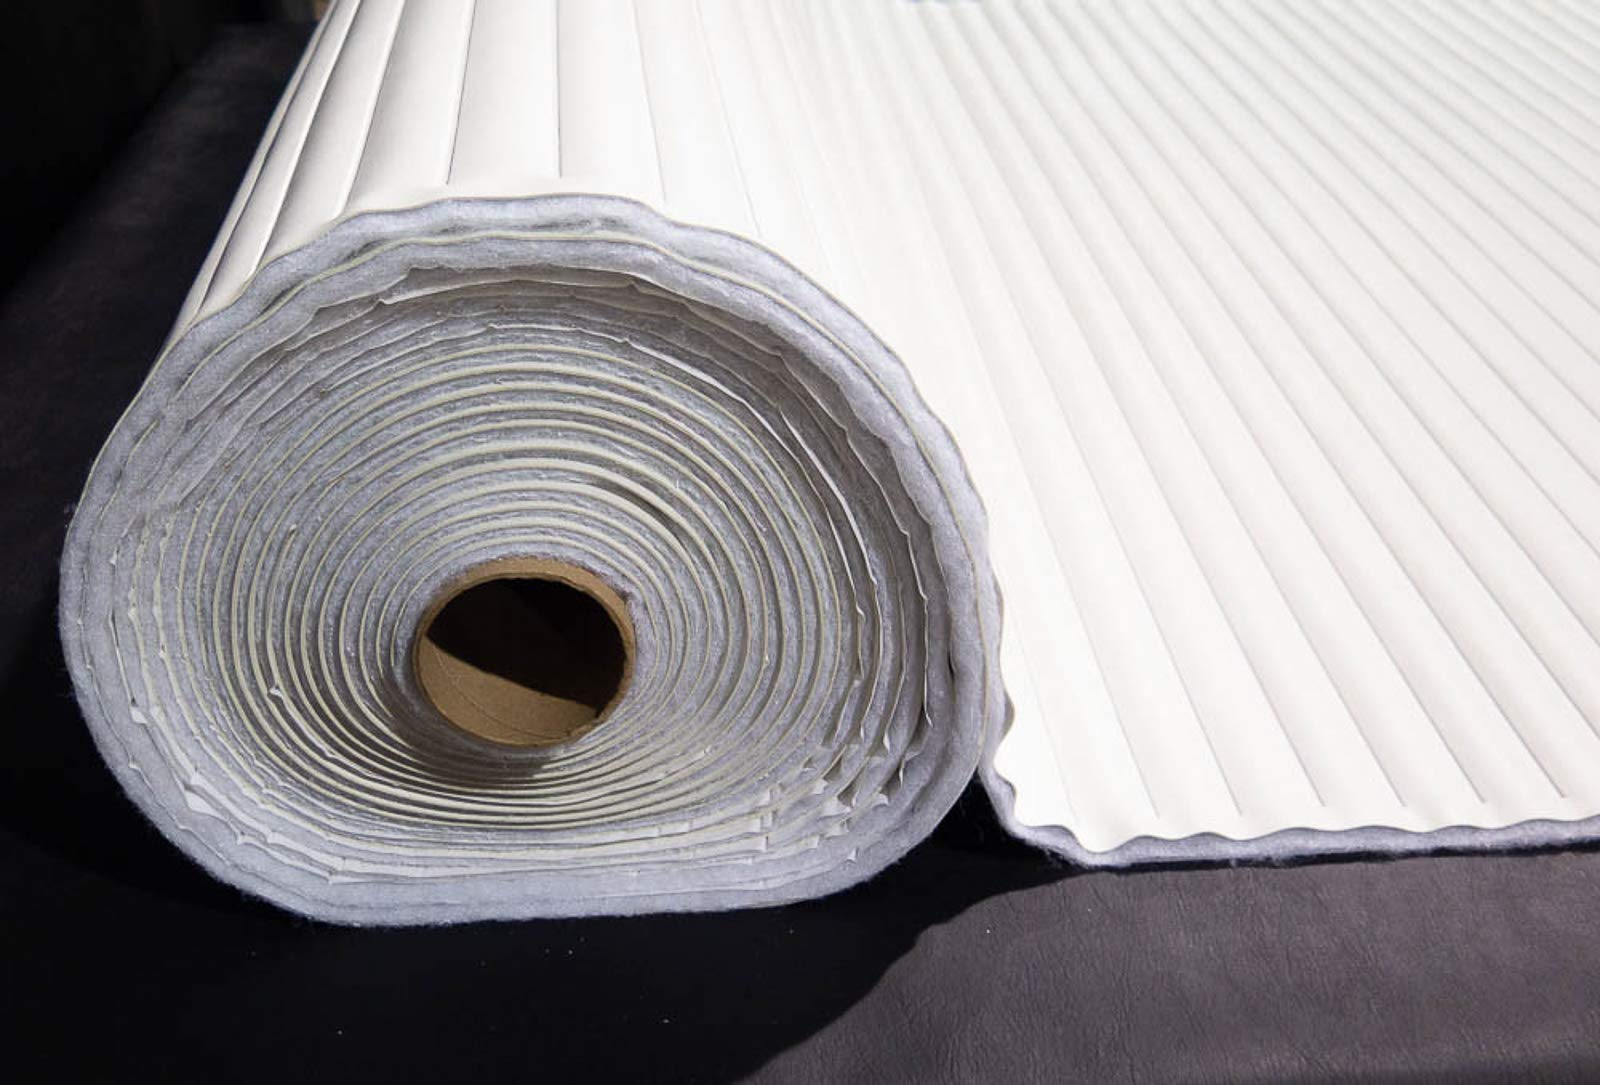 Pleated Marine Vinyl Upholstery Fabric Bright White 54'' Wide by 5 Yards Boat Auto by Bry-Tech Marine1 (Image #3)